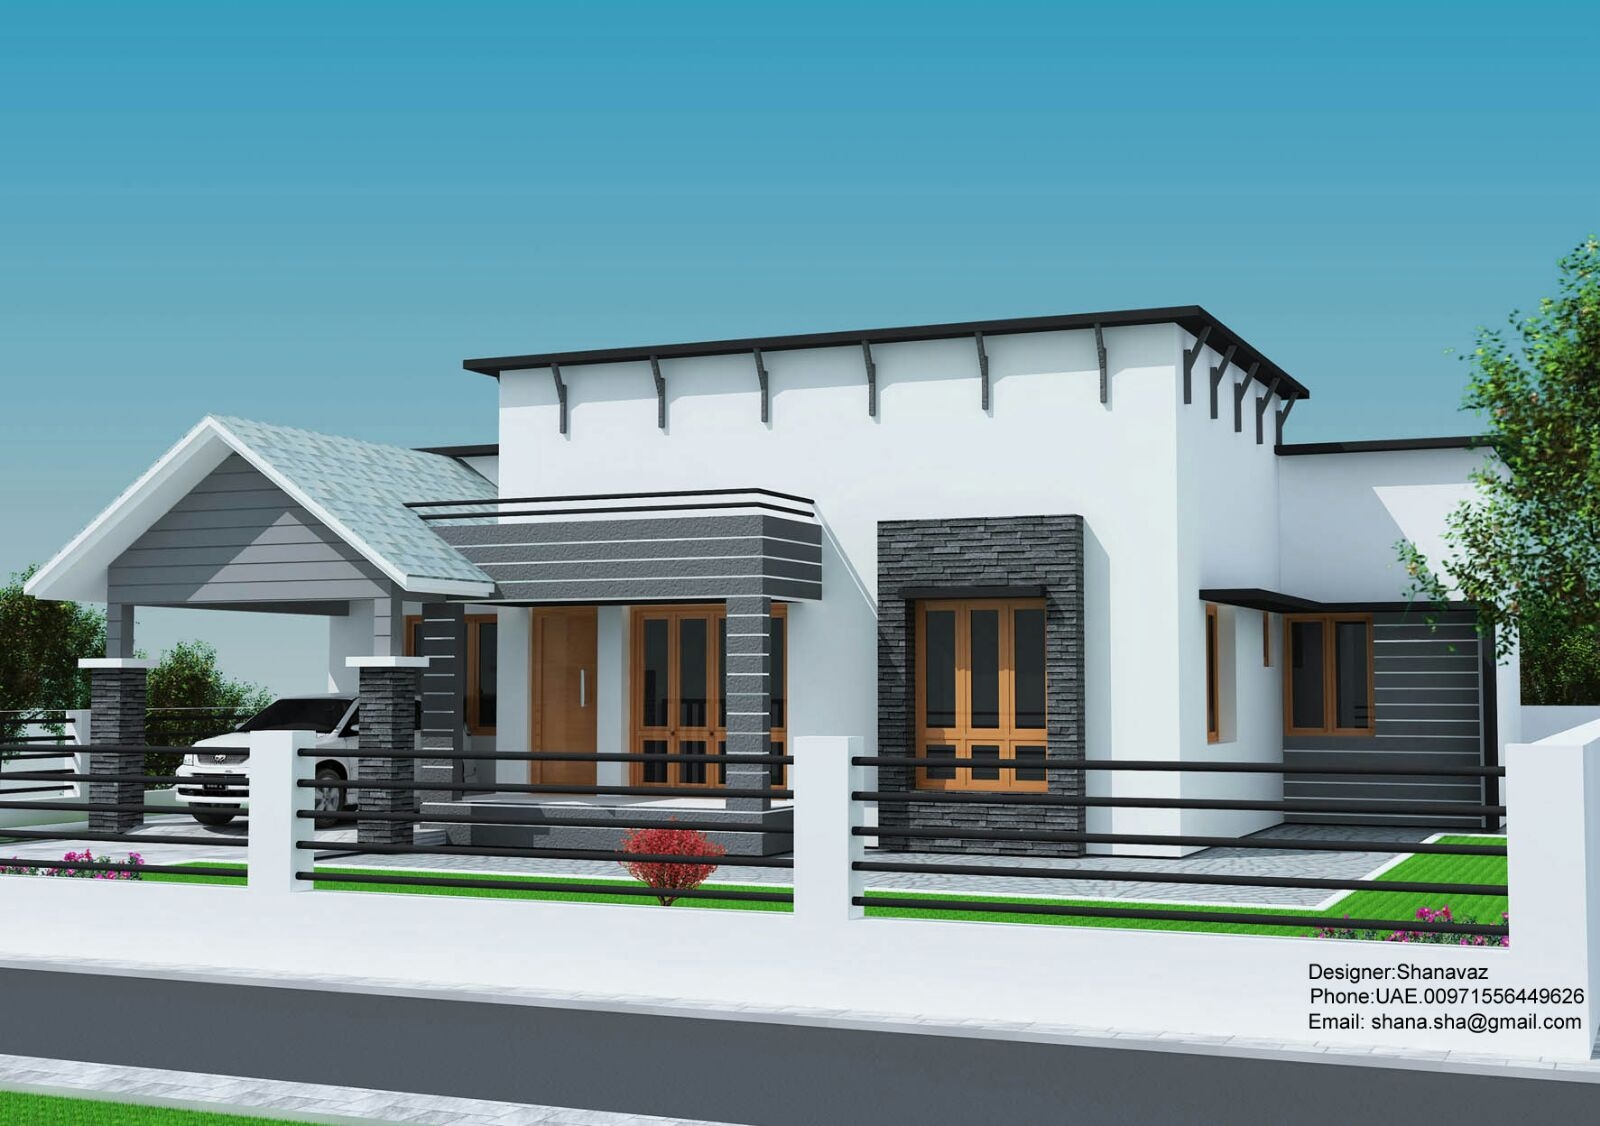 Small 3 Bedroom House Small Plot 3 Bedroom Single Floor House In Kerala With